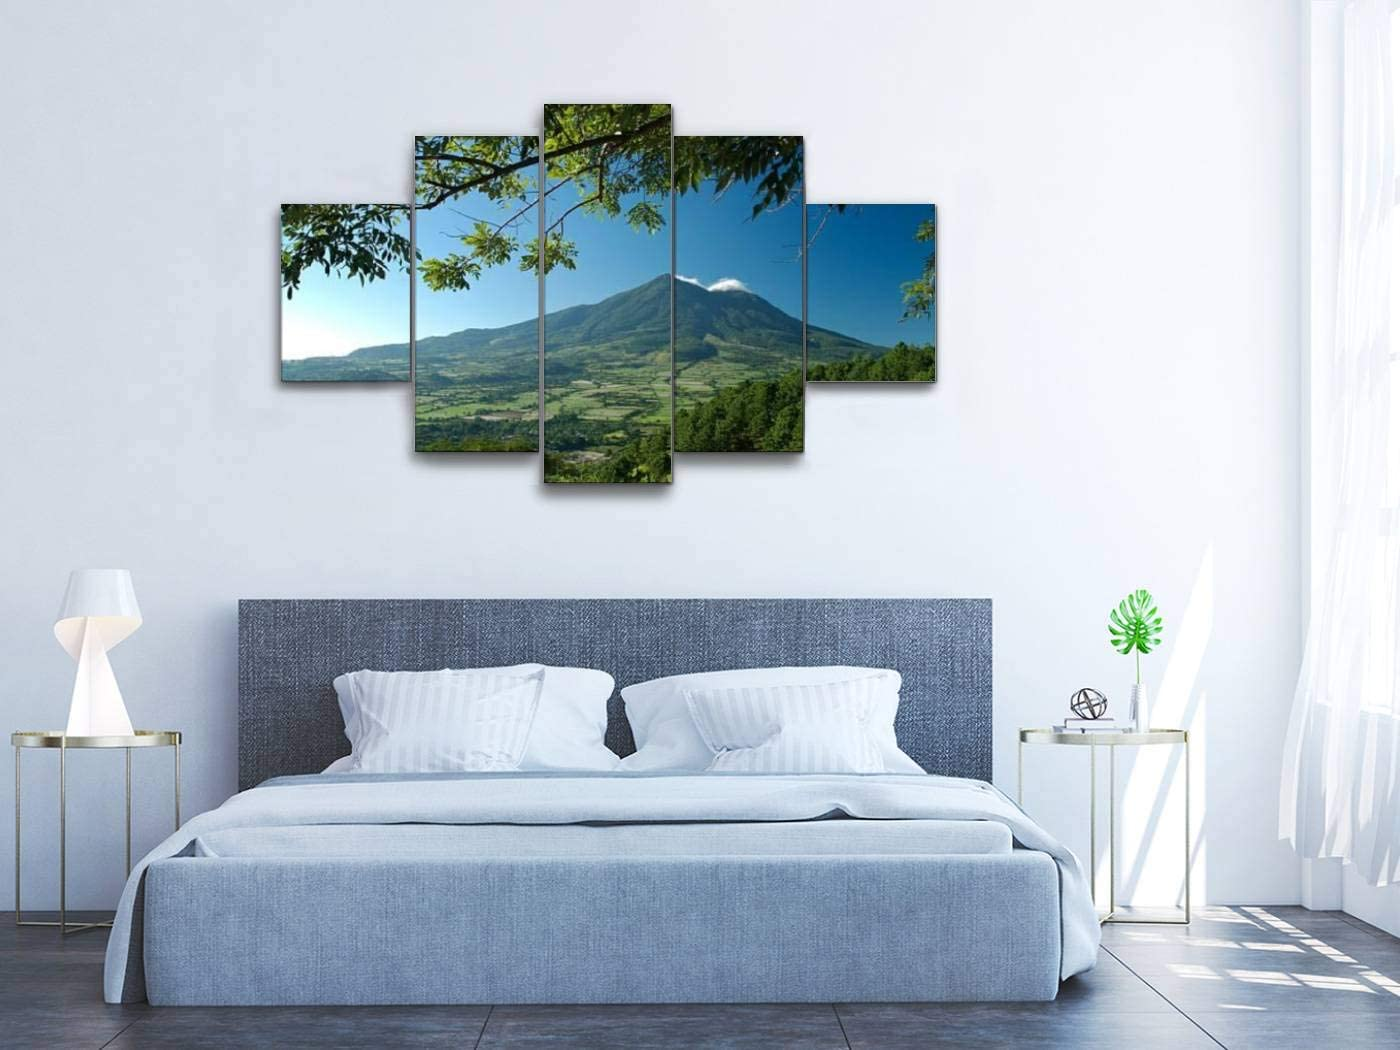 Skipvelo san Vicente Volcano el Salvador Central America volcanos and Wall Art Canvas Prints Pictures Paintings Artwork Home Decor Stretched and Framed